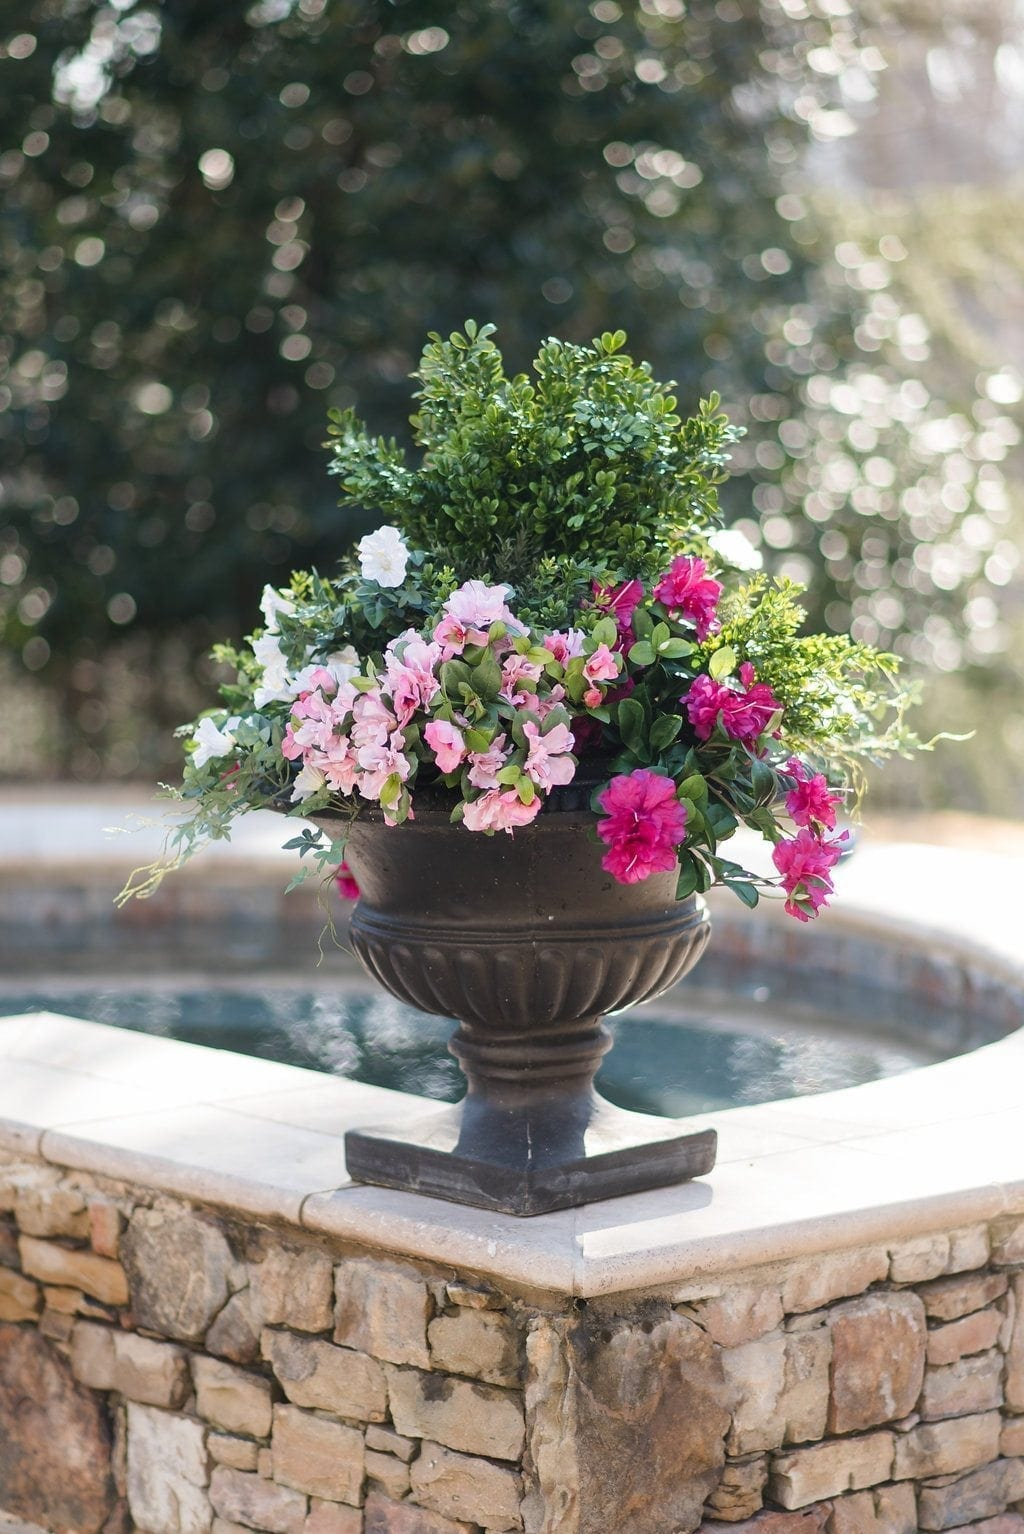 Plastic boxwoods and silk azalea plants used in black flower container by pool spa.